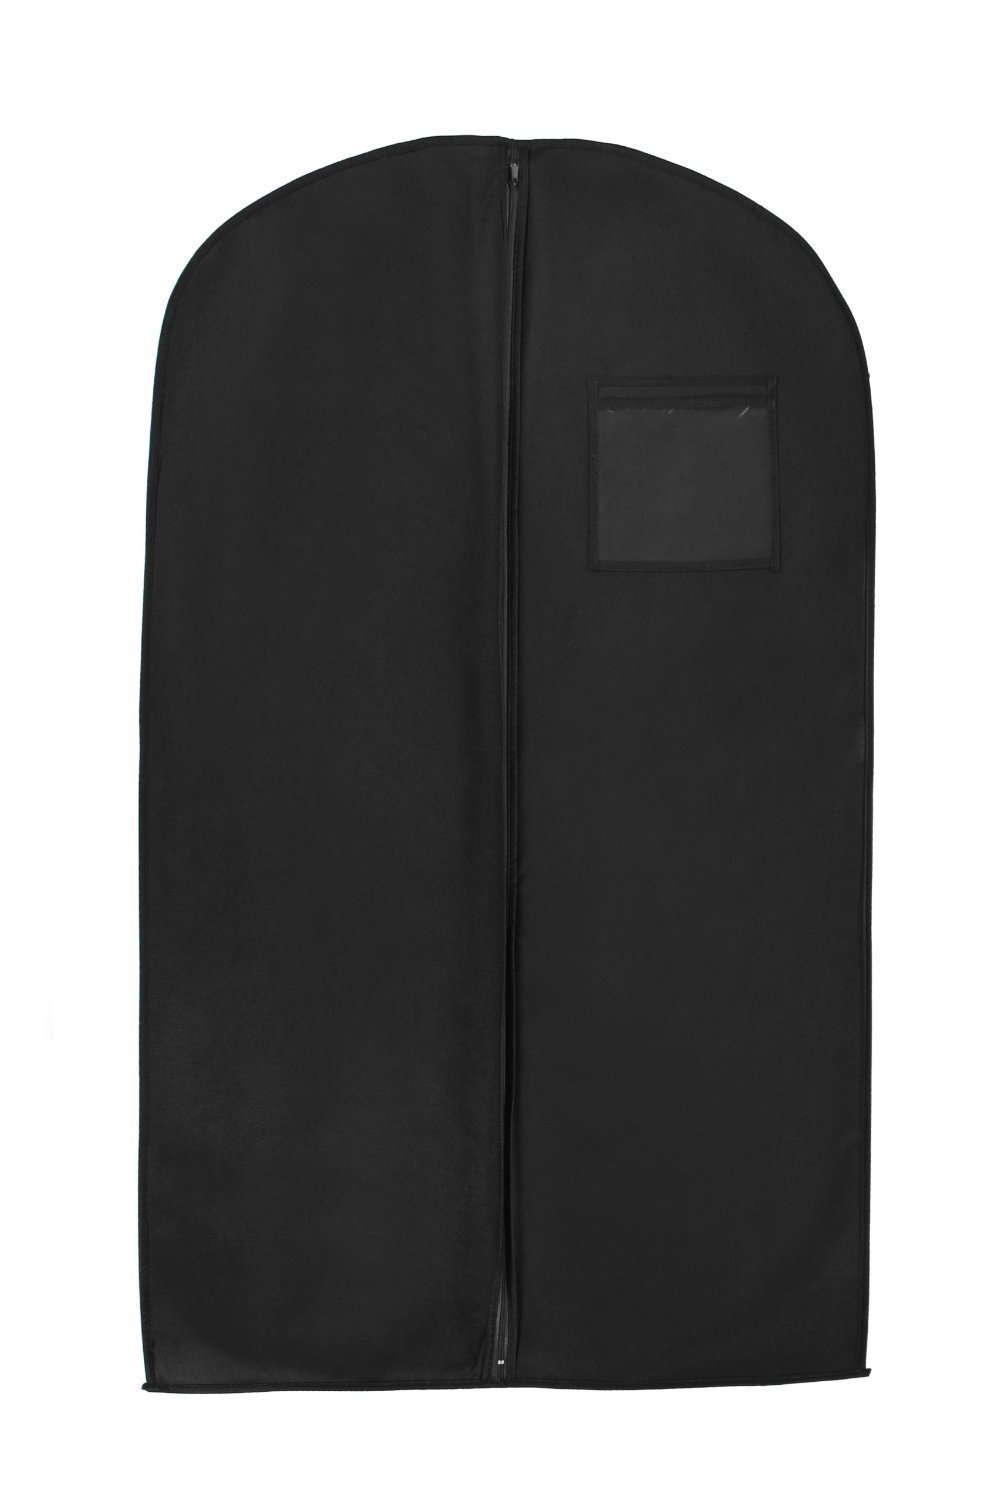 "Cimostar 40"" Breathable Garment Bags,Suit Garment Clothes Cover Bag,Suit Bag with Clear Identity Pouch,Black"